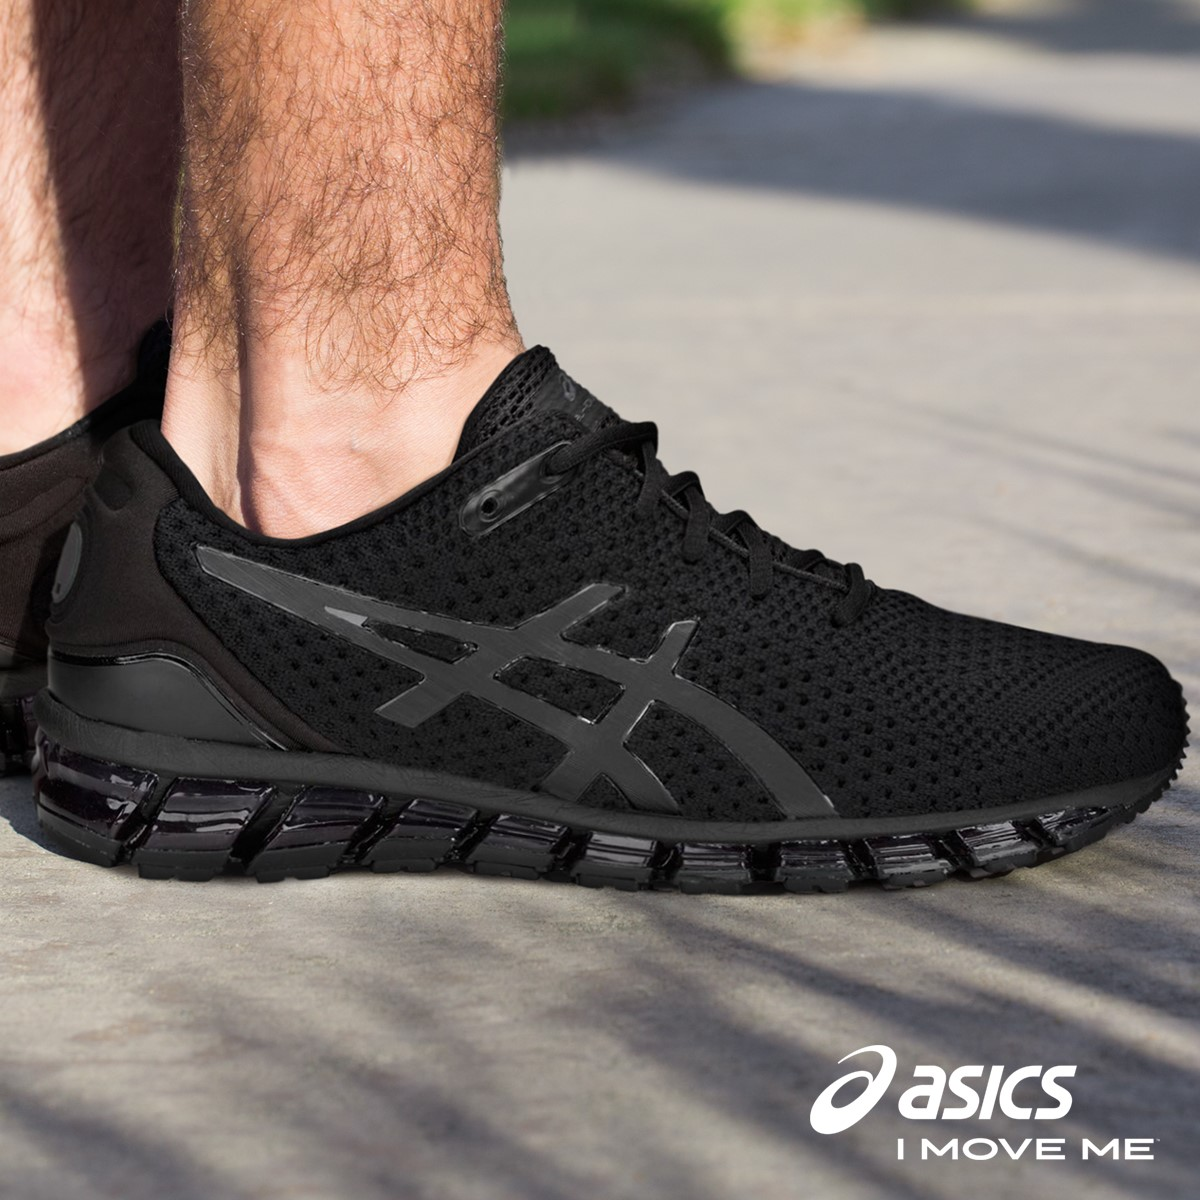 hot sale online 4dfbe 7710a Asics Gel Quantum 360 Knit 2 - Mens Training Shoes - Black